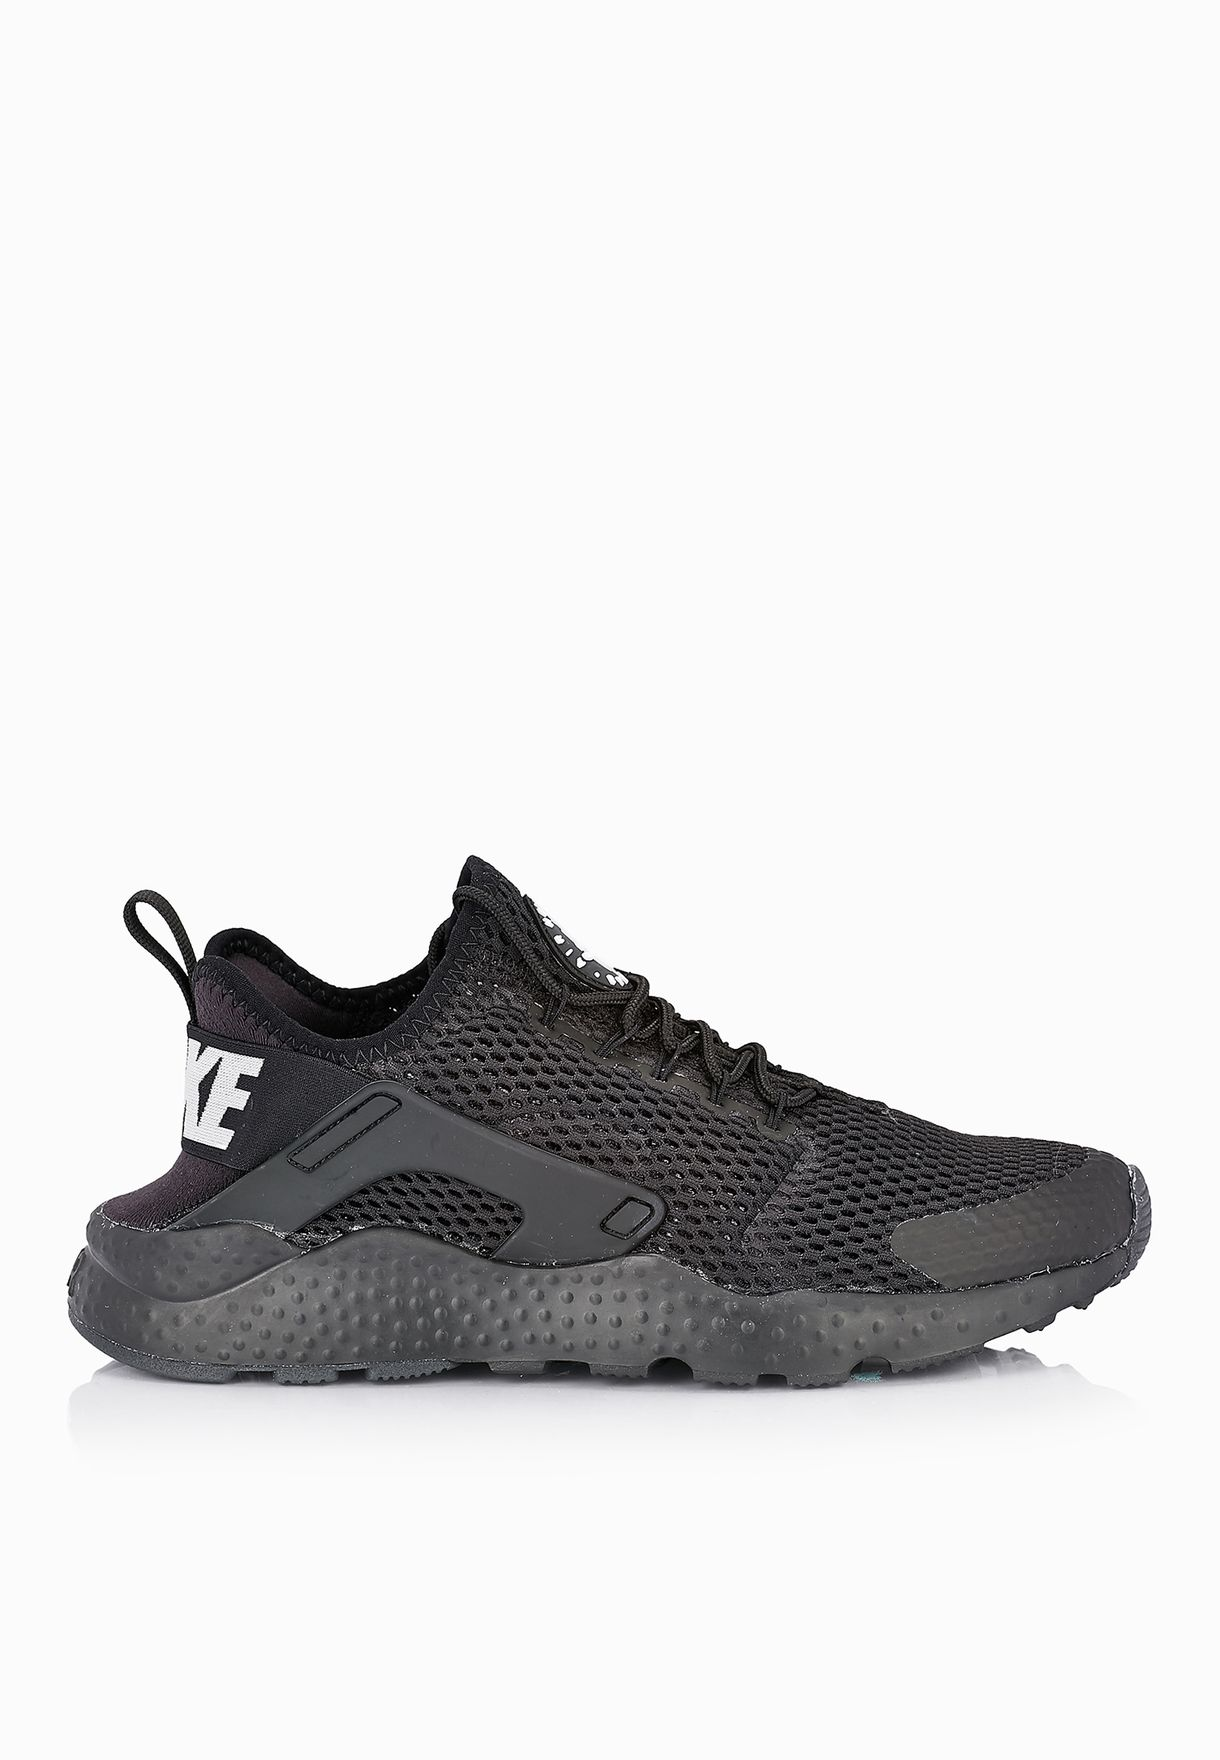 399dadeaabb1d Shop Nike black Air Huarache Run Ultra BR 833292-001 for Women in ...